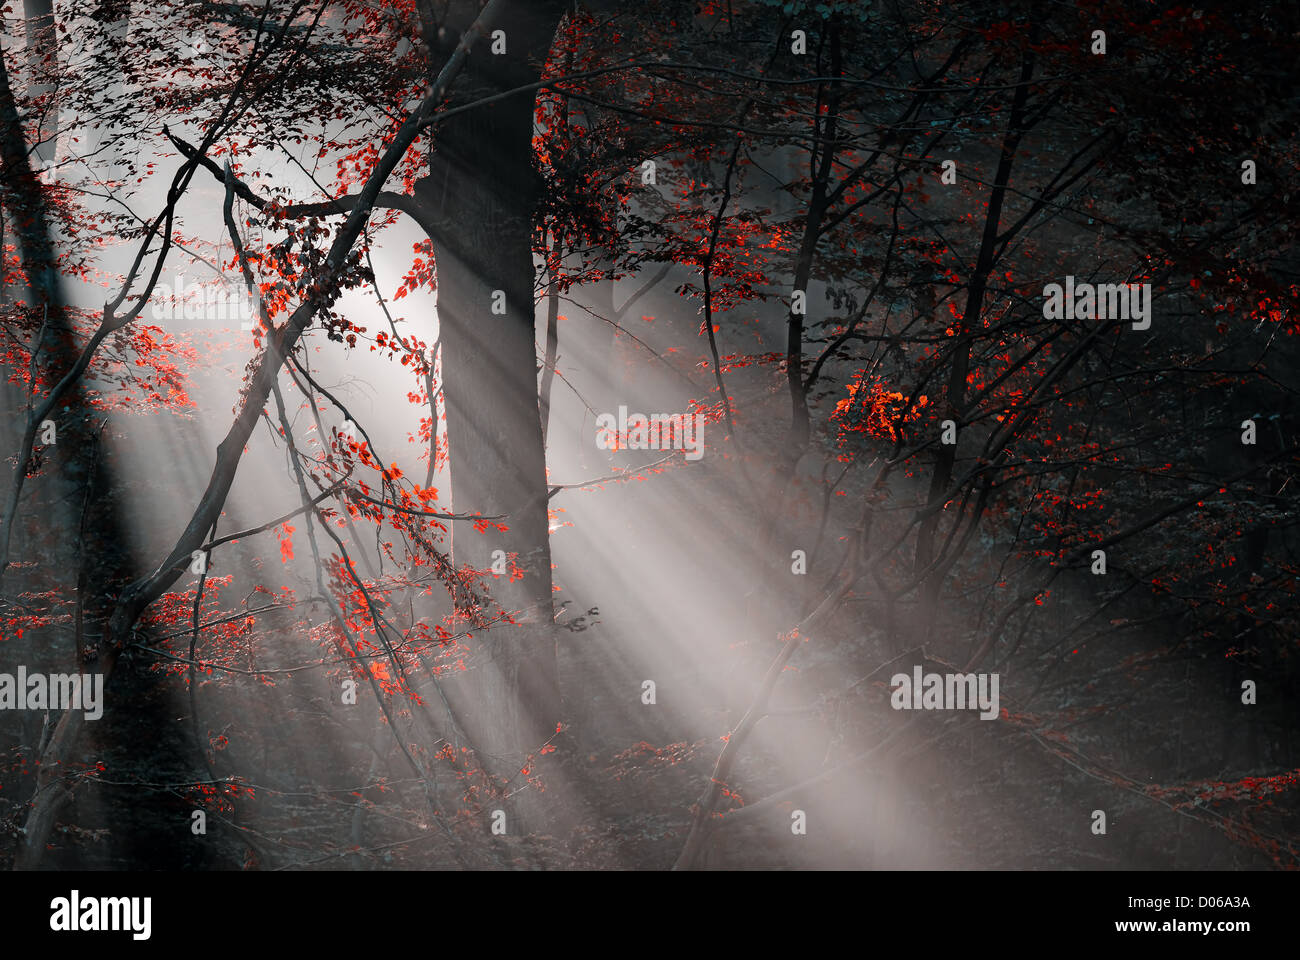 red colors and subeams in the forest - Stock Image